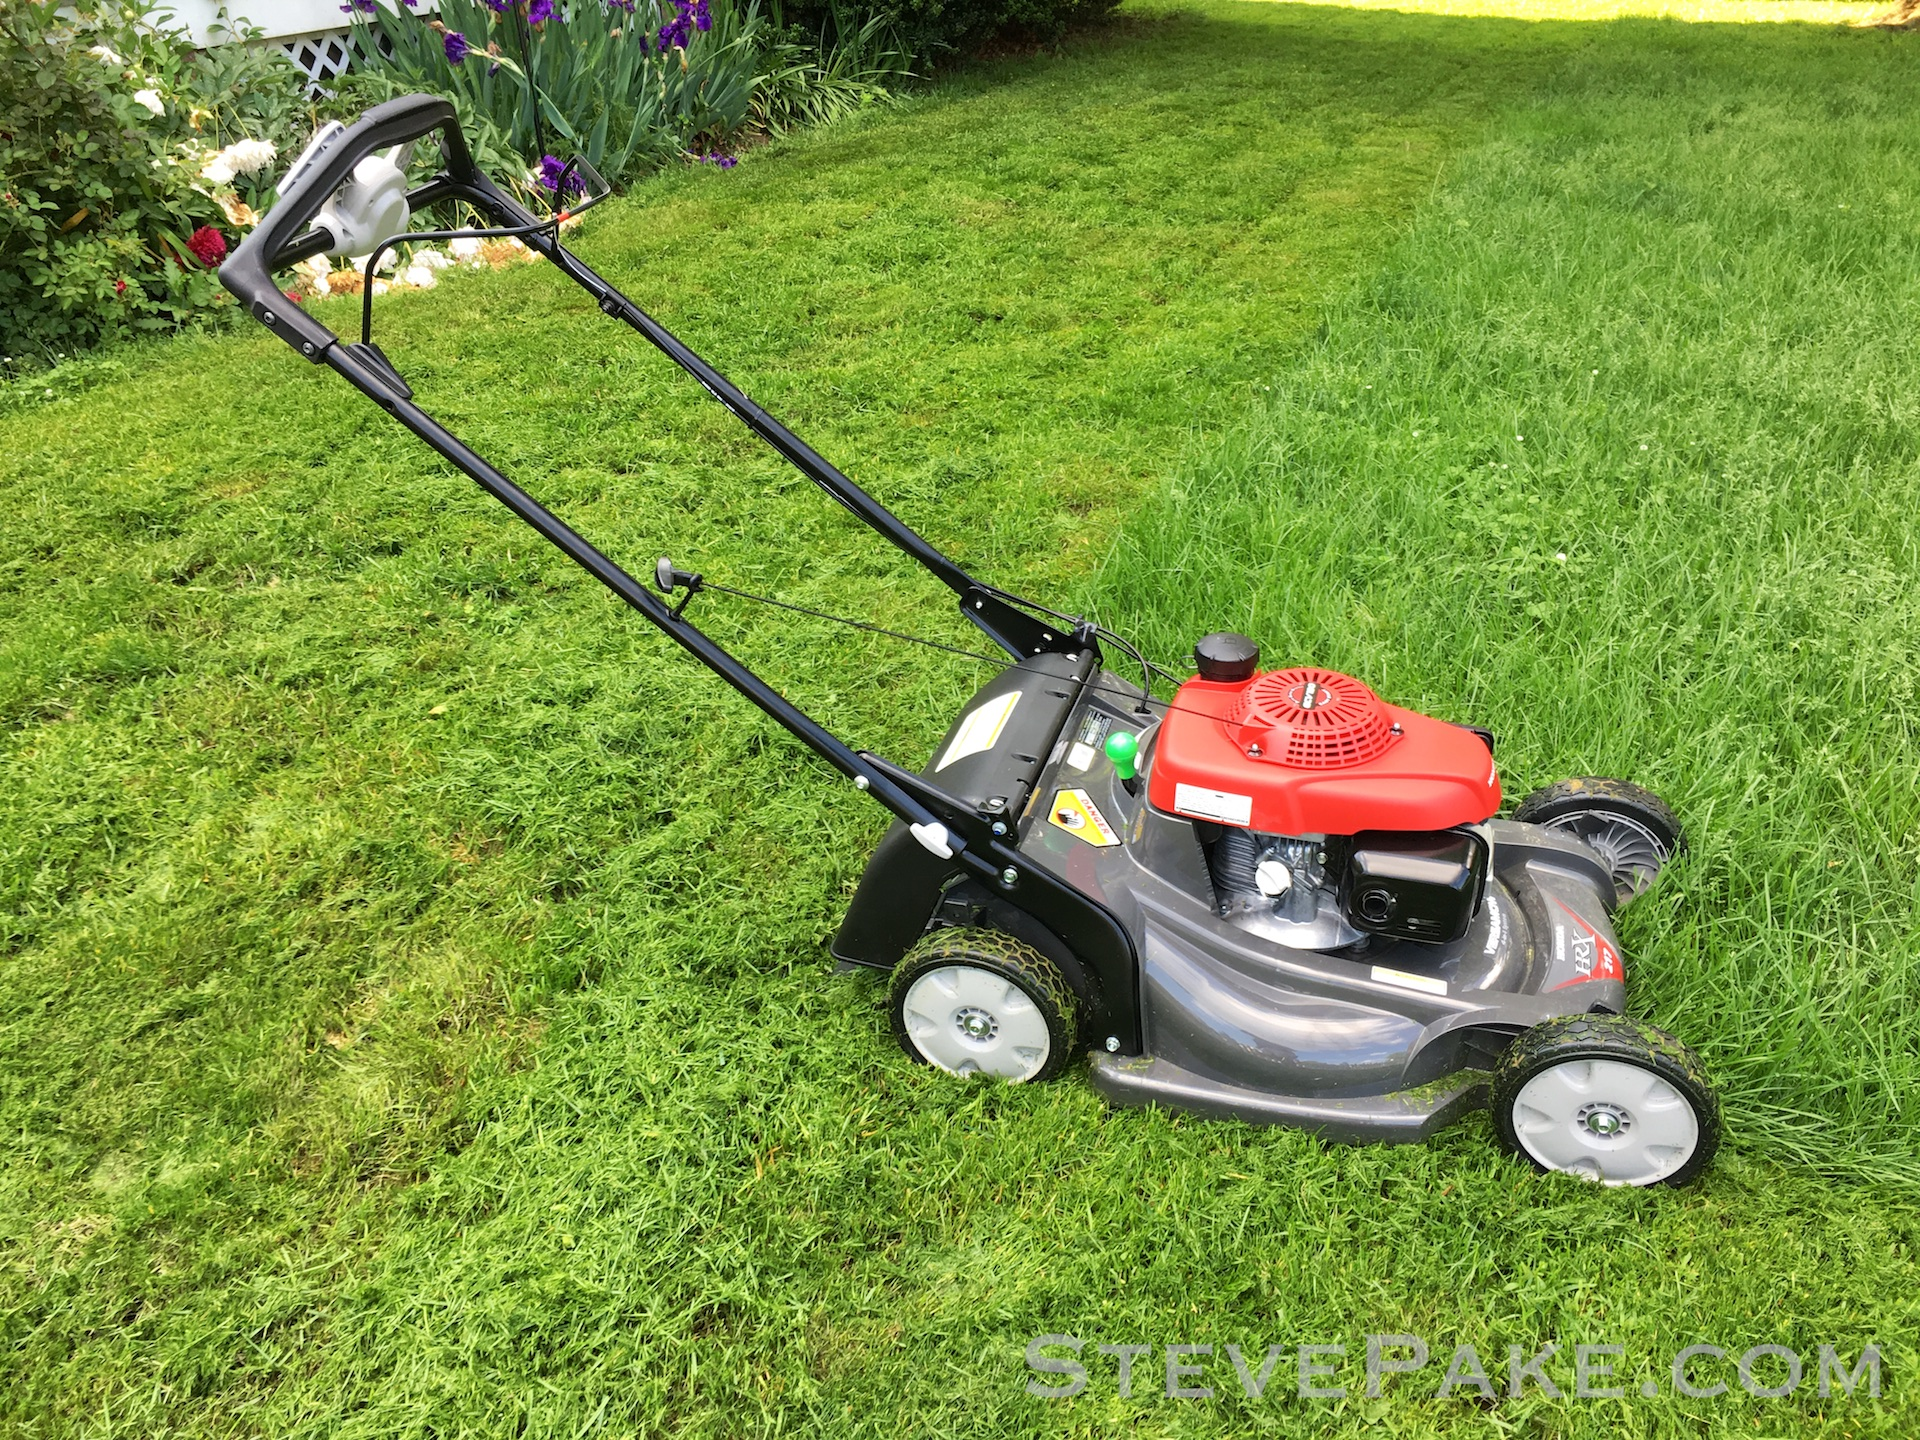 I eventually had to switch to partial bagging mode because it was just too much to be mulching well for any mower, but this 5.1 net horsepower (3.8kW) mower chewed right through it all at speed.